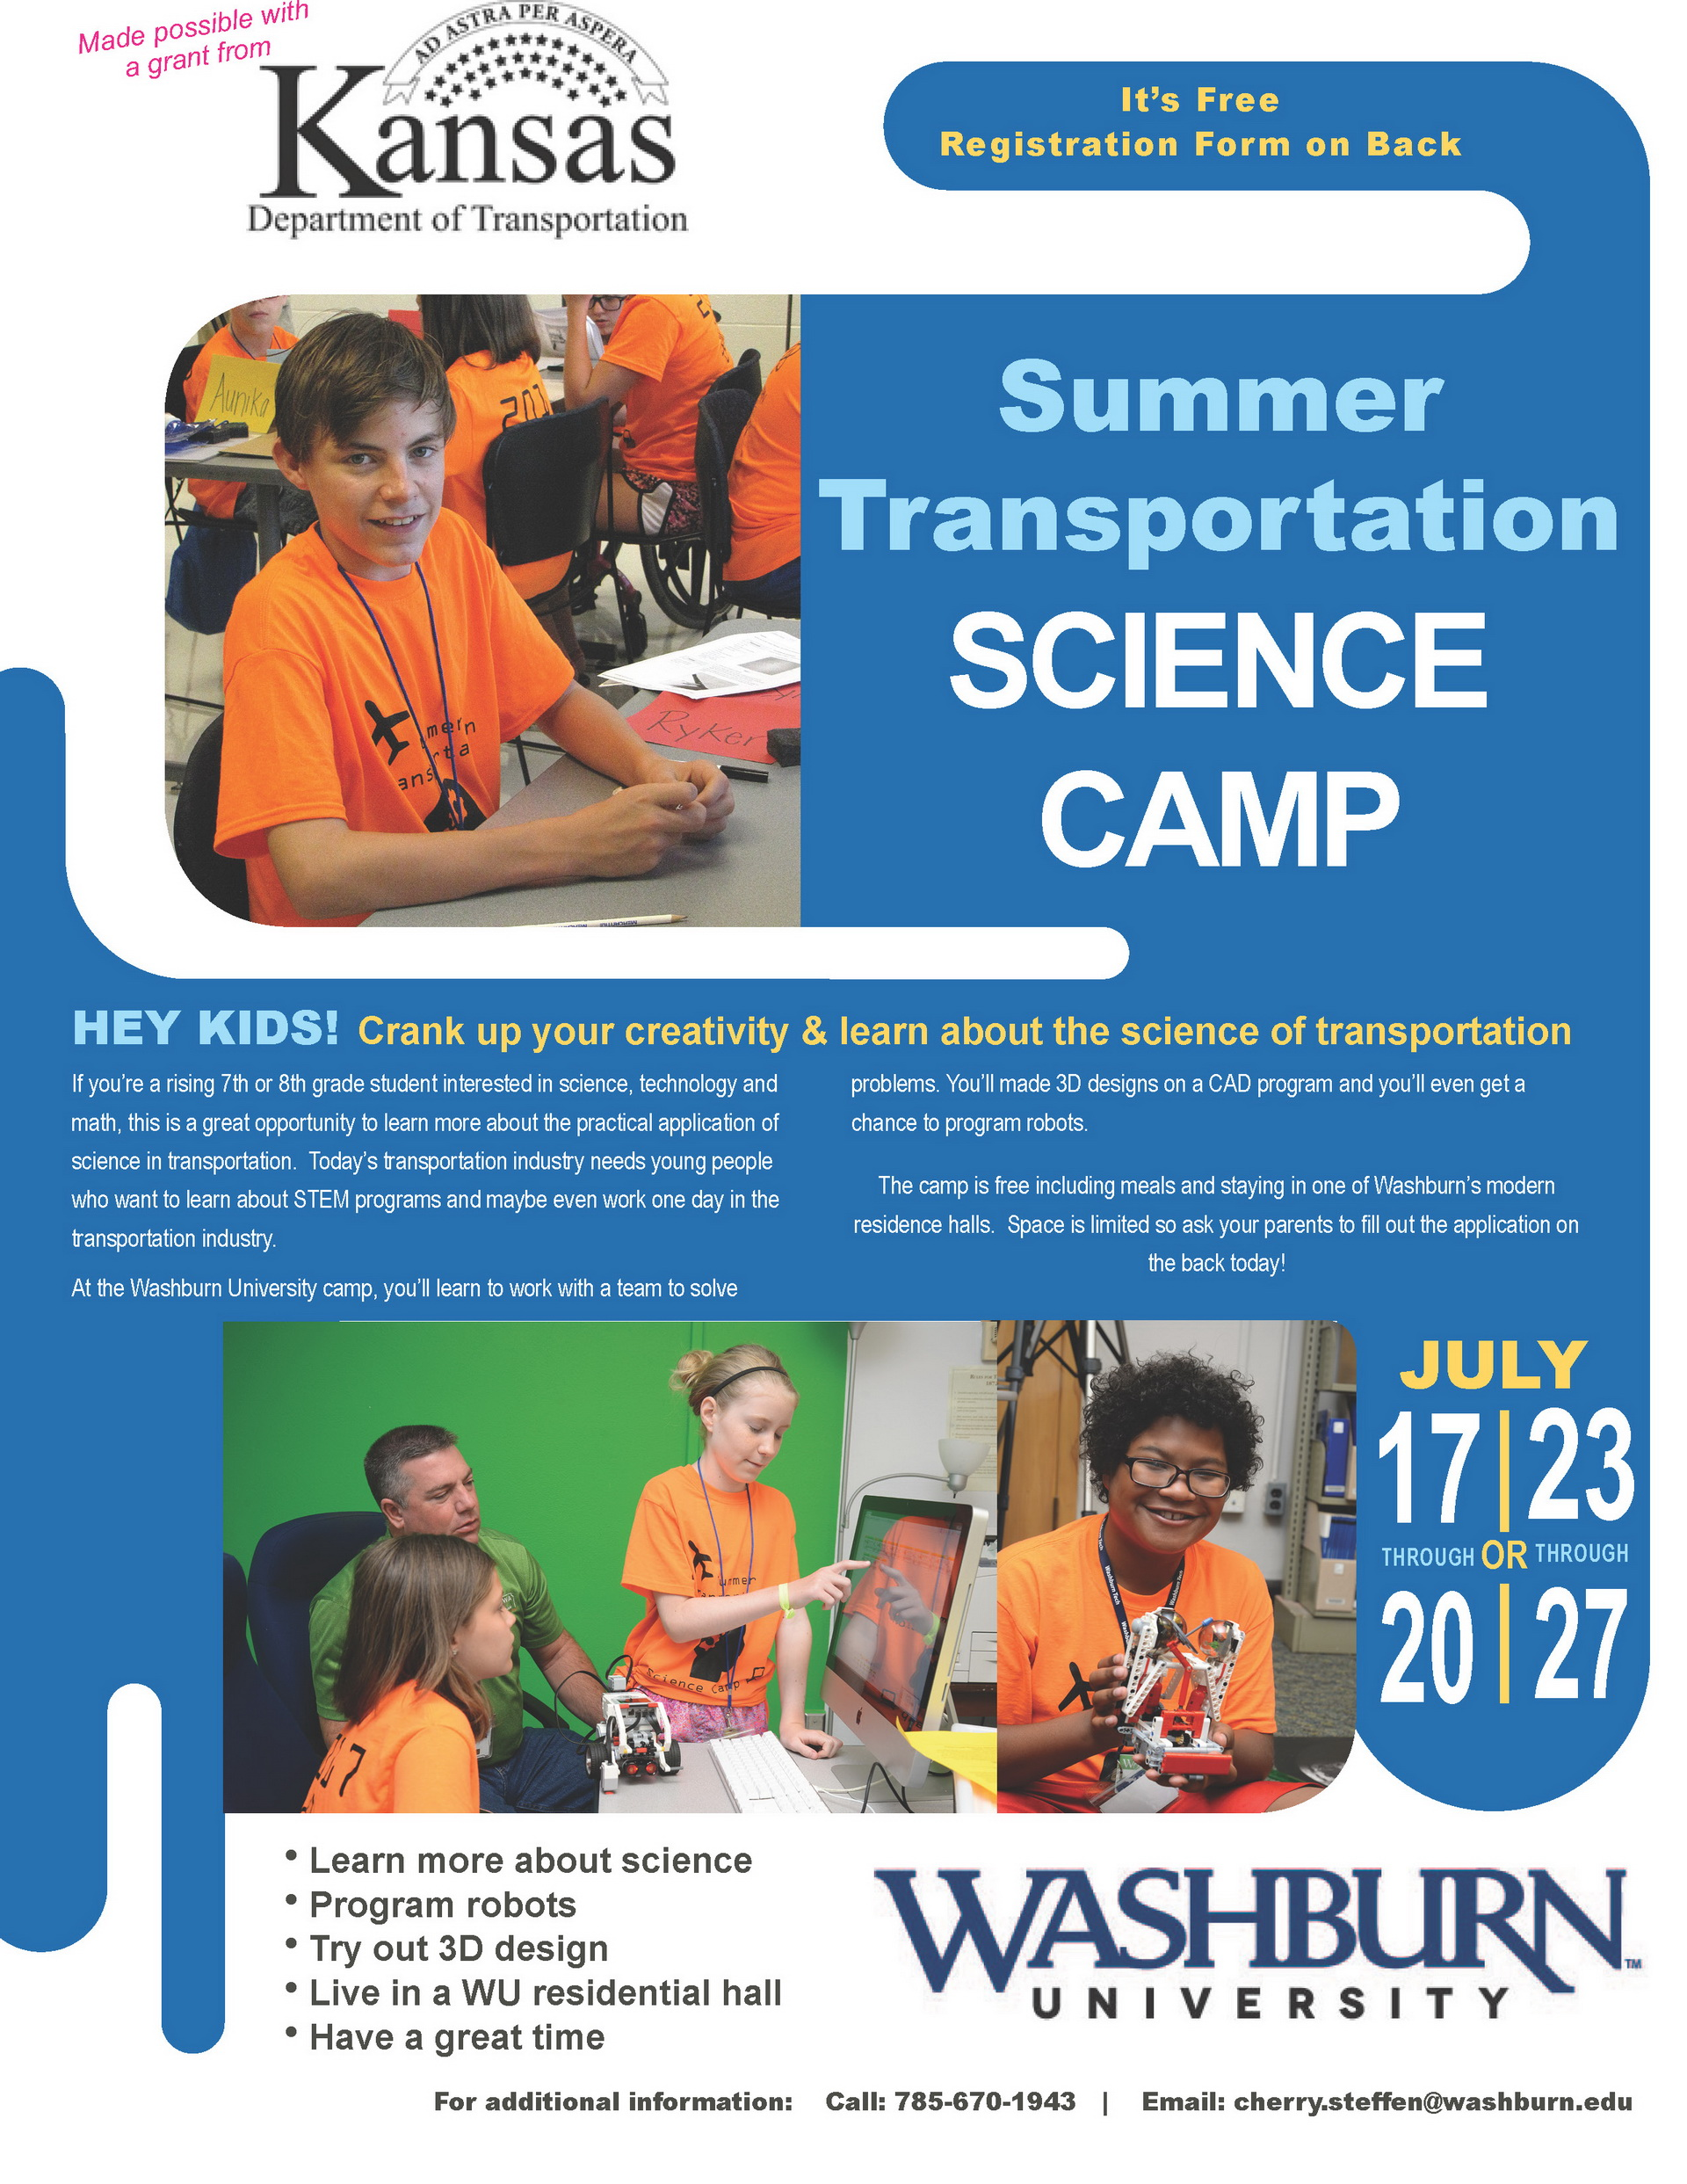 Transportation Science Camp